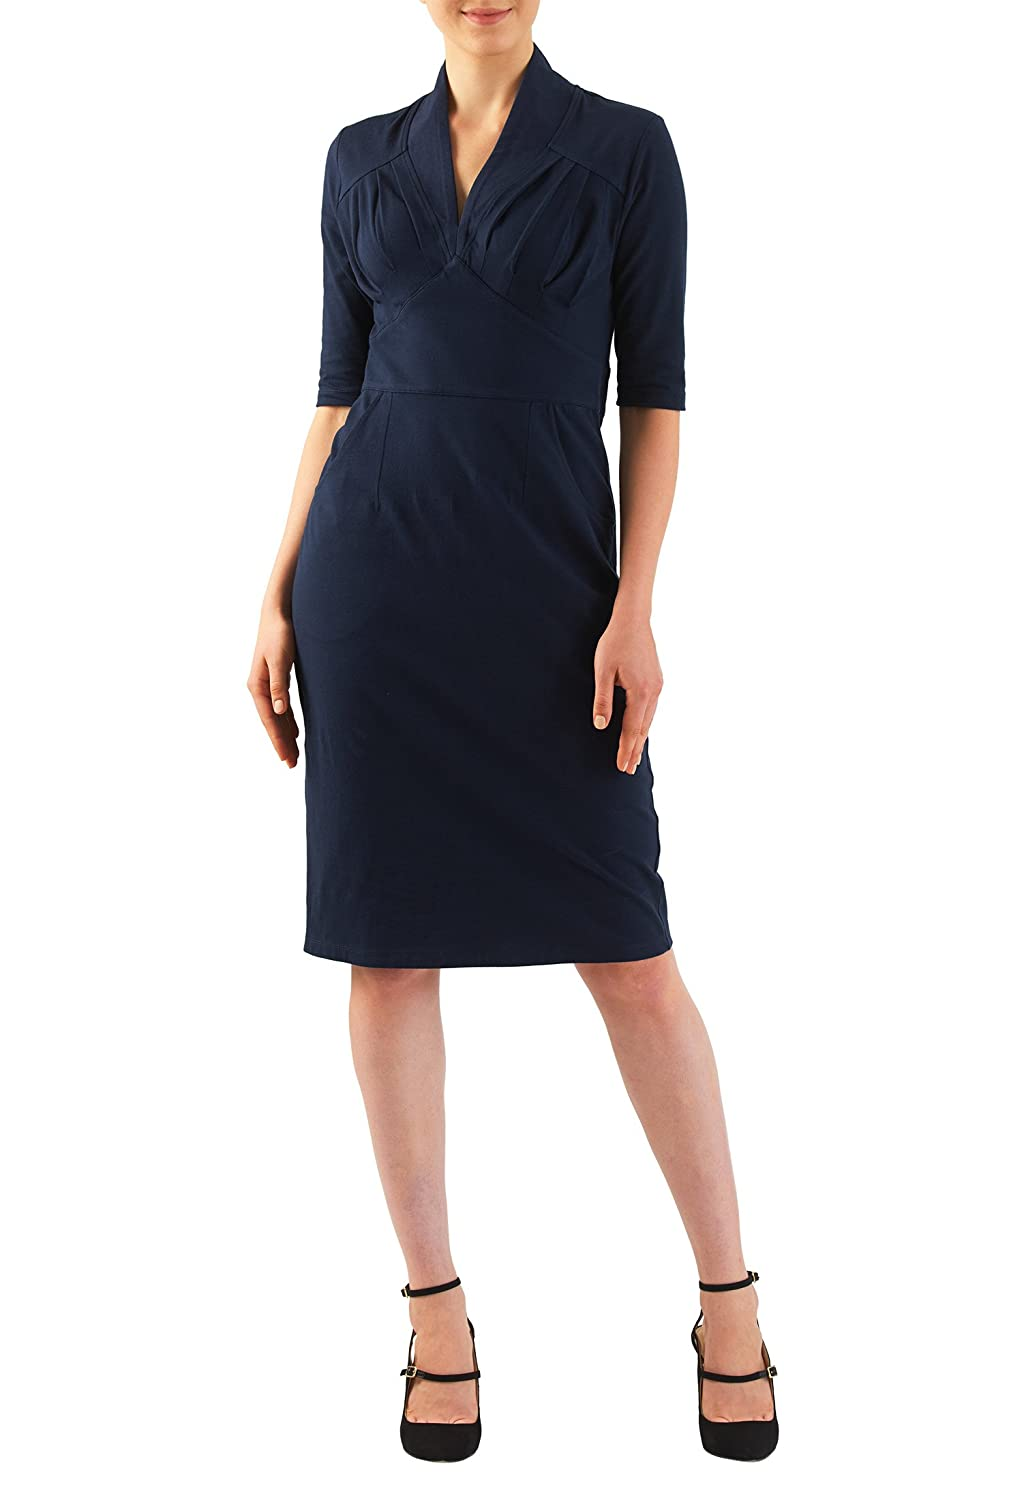 1940s Pinup Dresses for Sale  Feminine pleated cotton knit sheath dress $54.95 AT vintagedancer.com